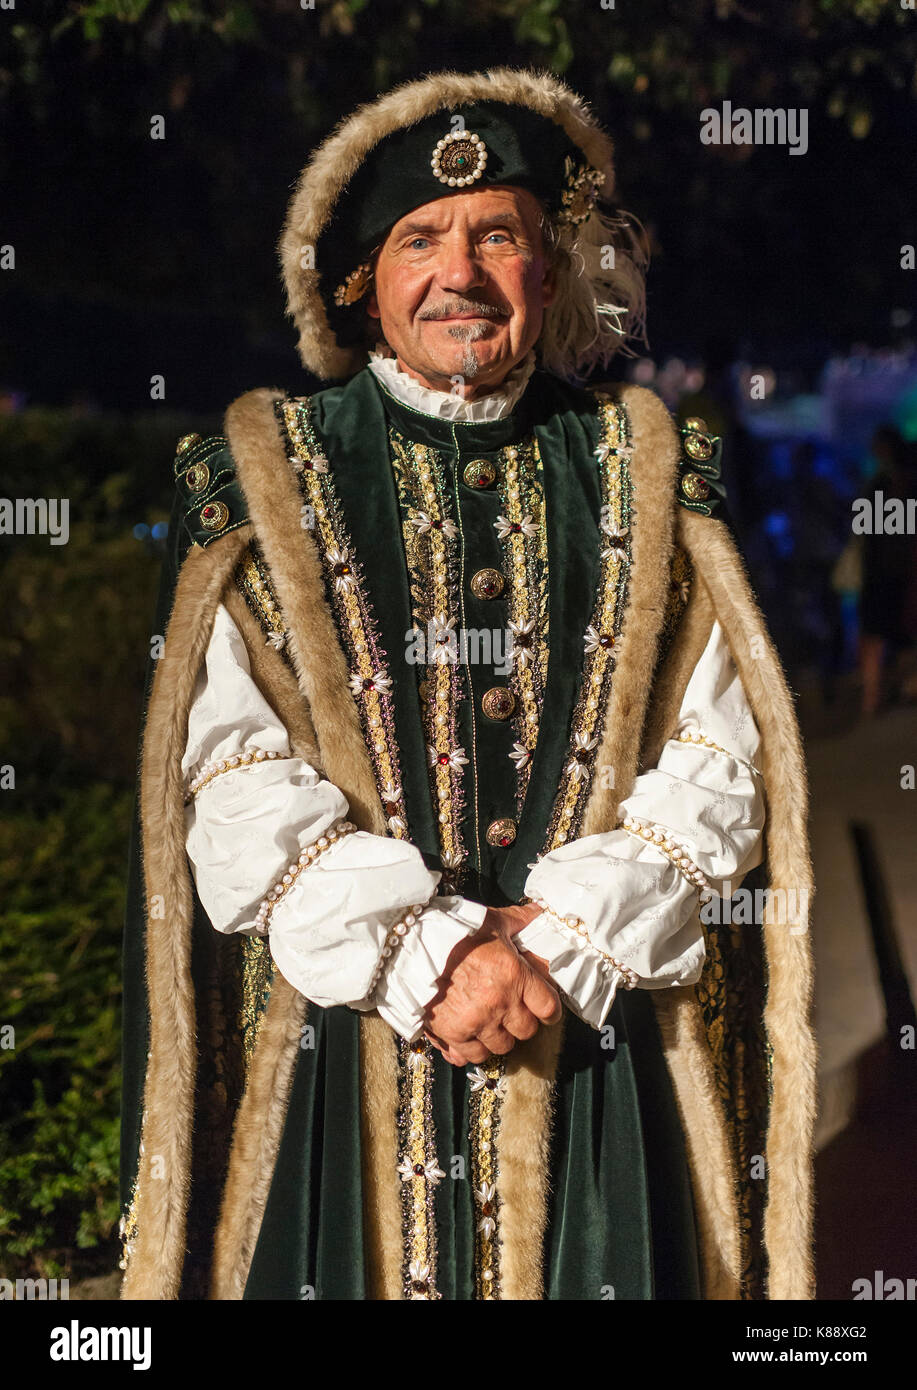 San Marini man dressed in period outfit during the annual Medieval Days Festival held in the old town of San Marino - Stock Image